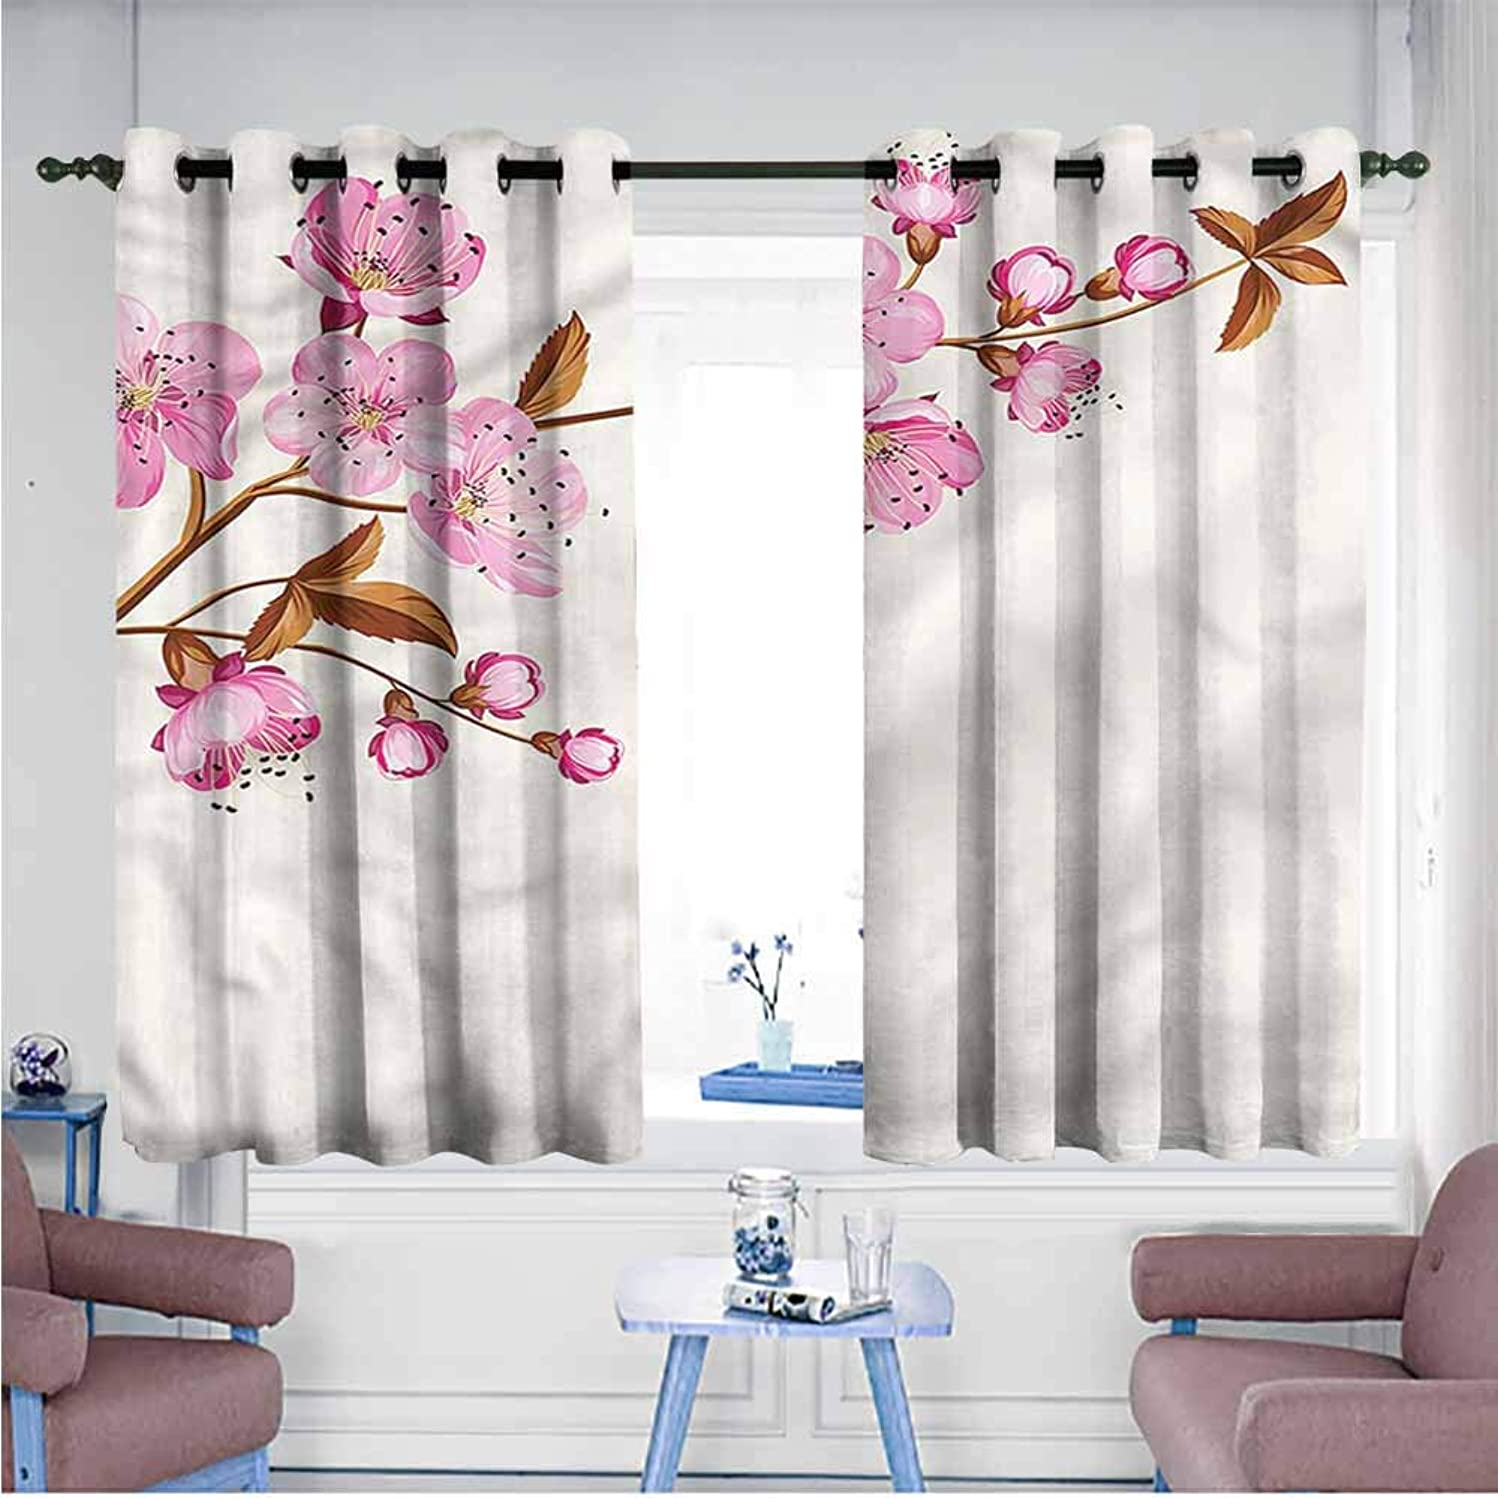 Mdxizc Curtain for Kids Flower Springtime Cherry Blossoms Children's Bedroom Curtain W55 xL72 Suitable for Bedroom,Living,Room,Study, etc.